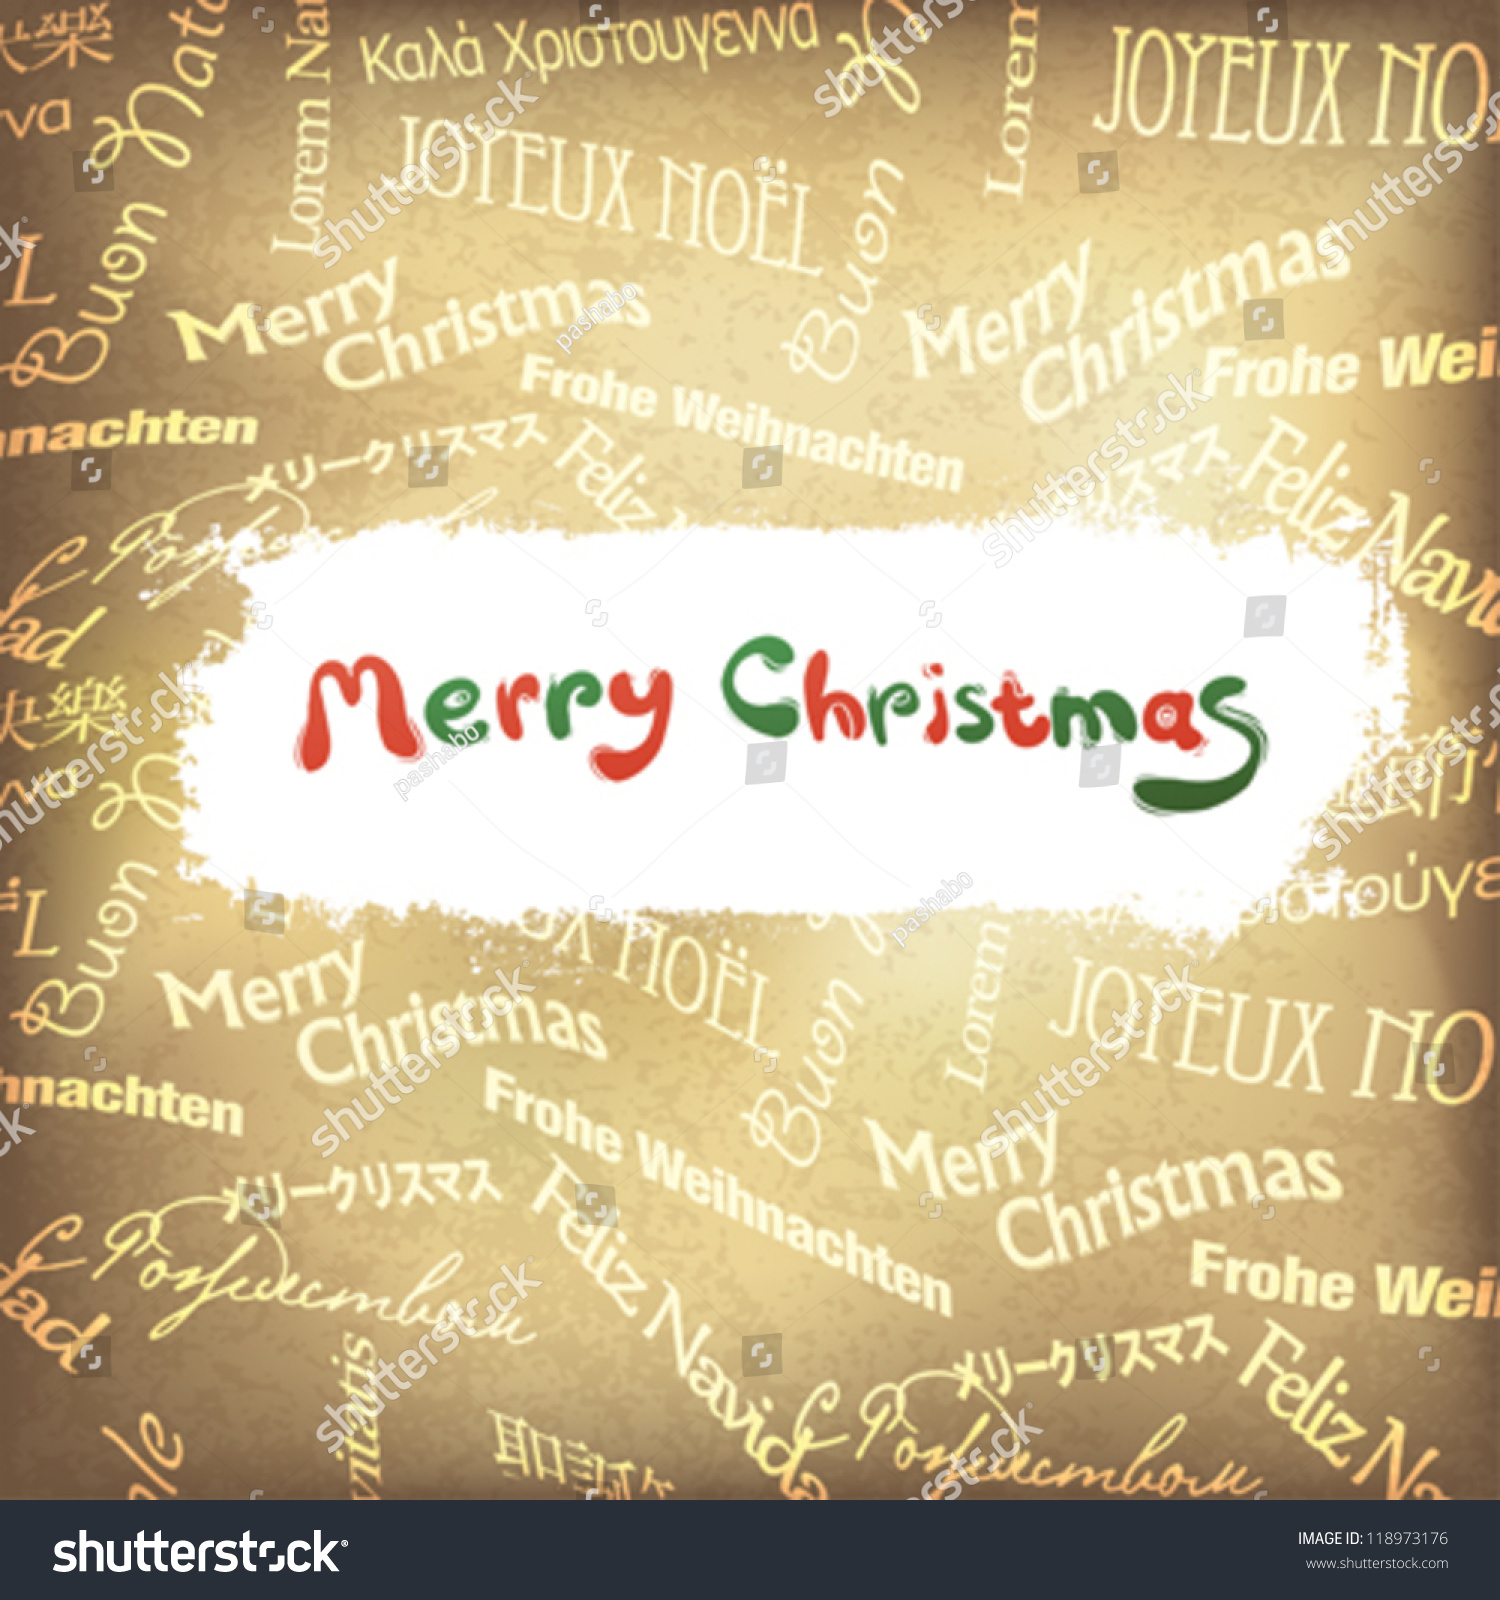 Retro Christmas Greetings Different Languages Vector Stock Vector